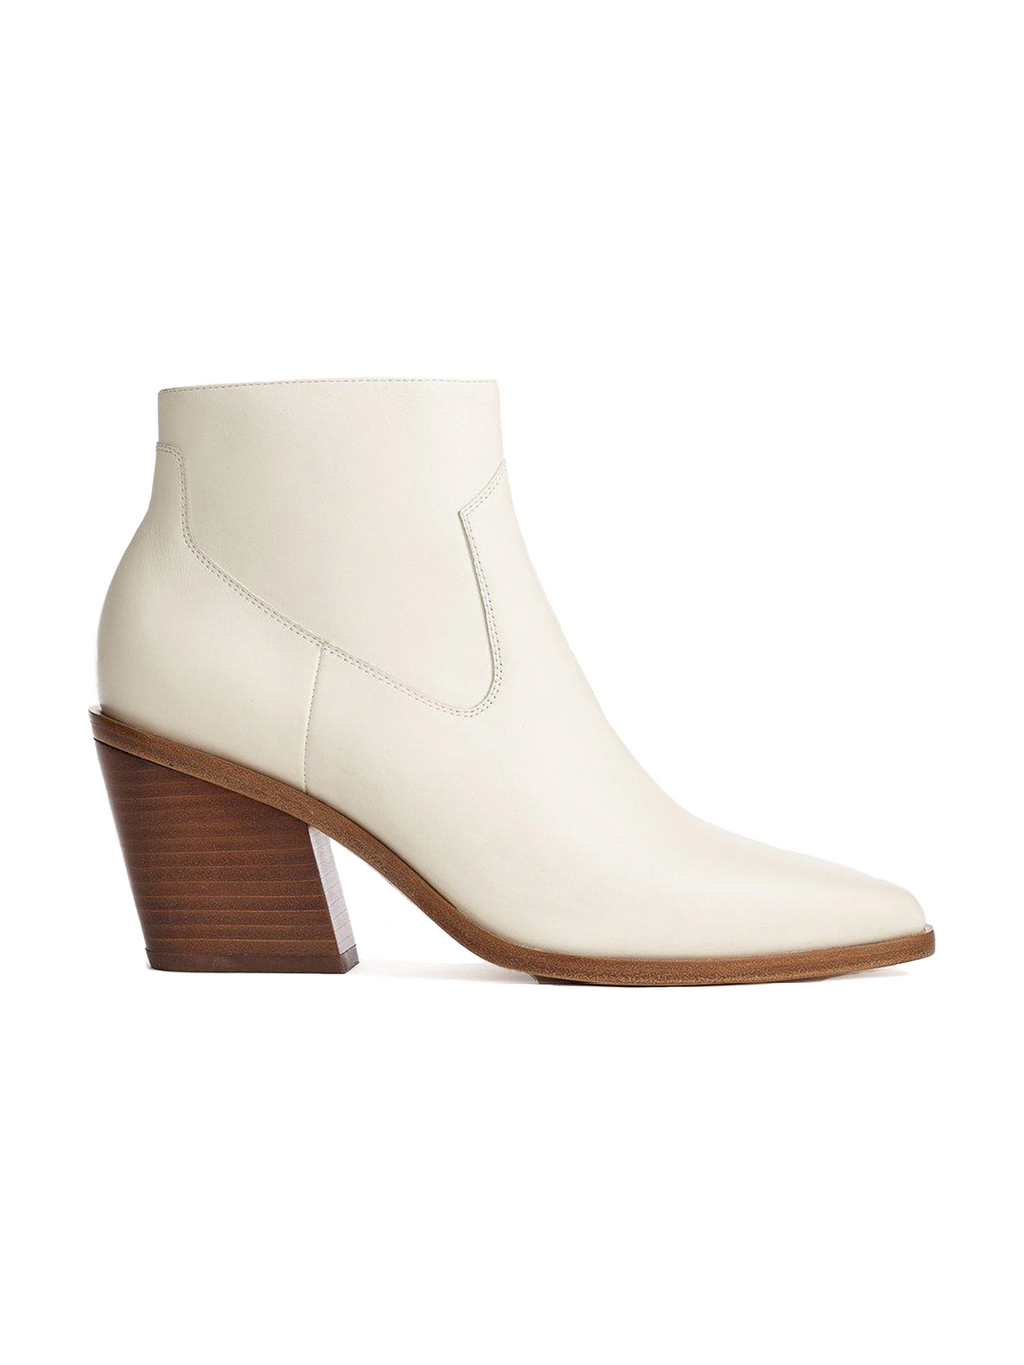 Rag & Bone Razor Boot - Antique White